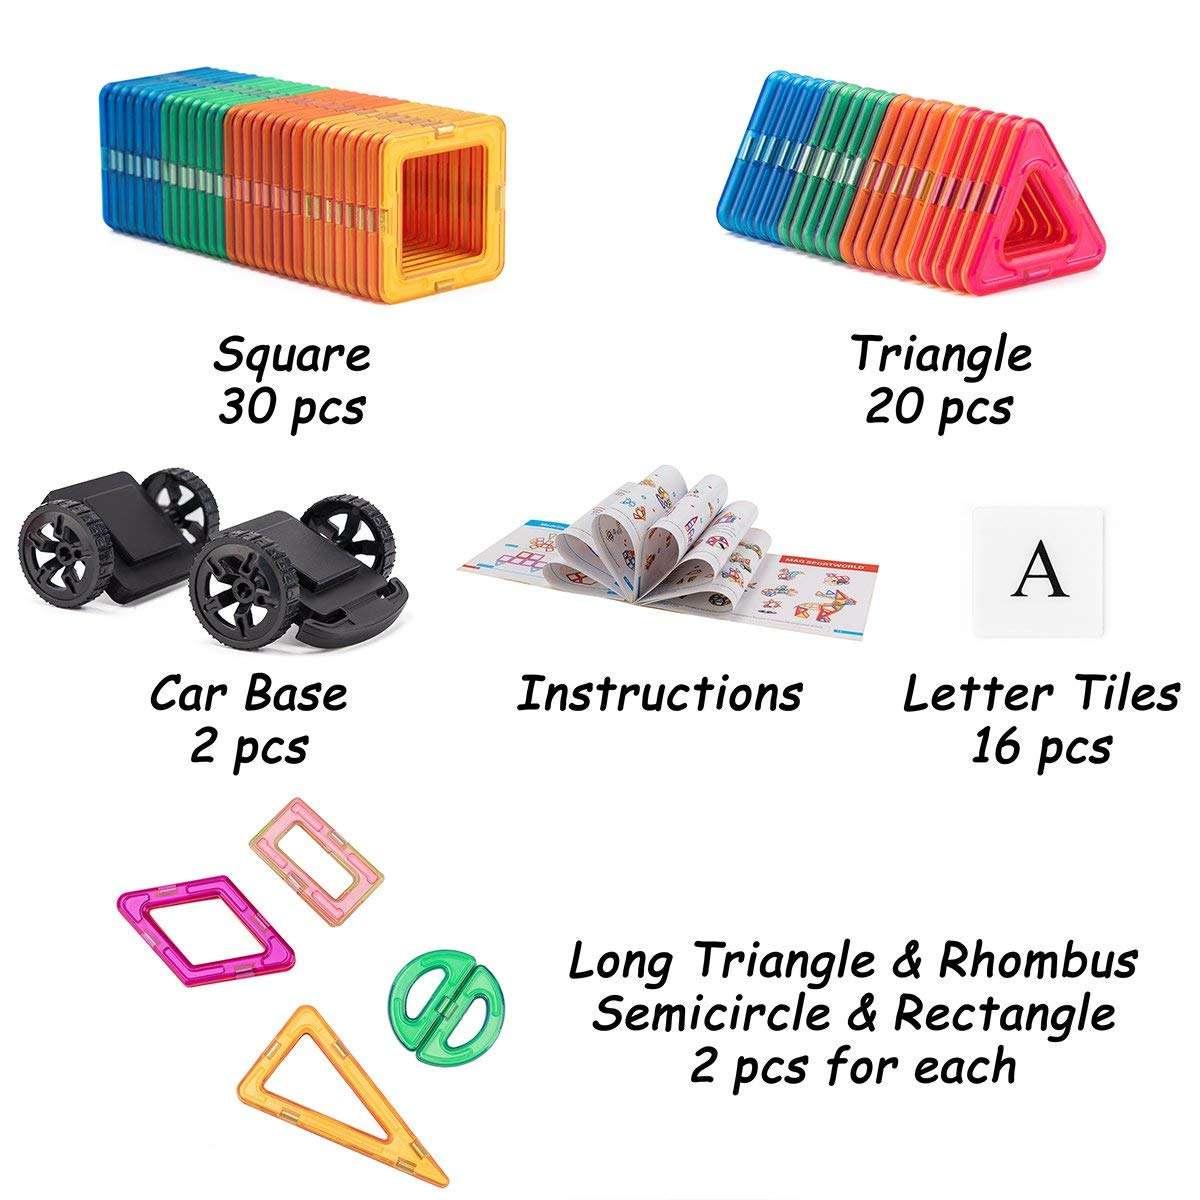 363b47ef2 ... 208 Pieces STEM Learning Toy Engineering Construction Building Blocks  ...